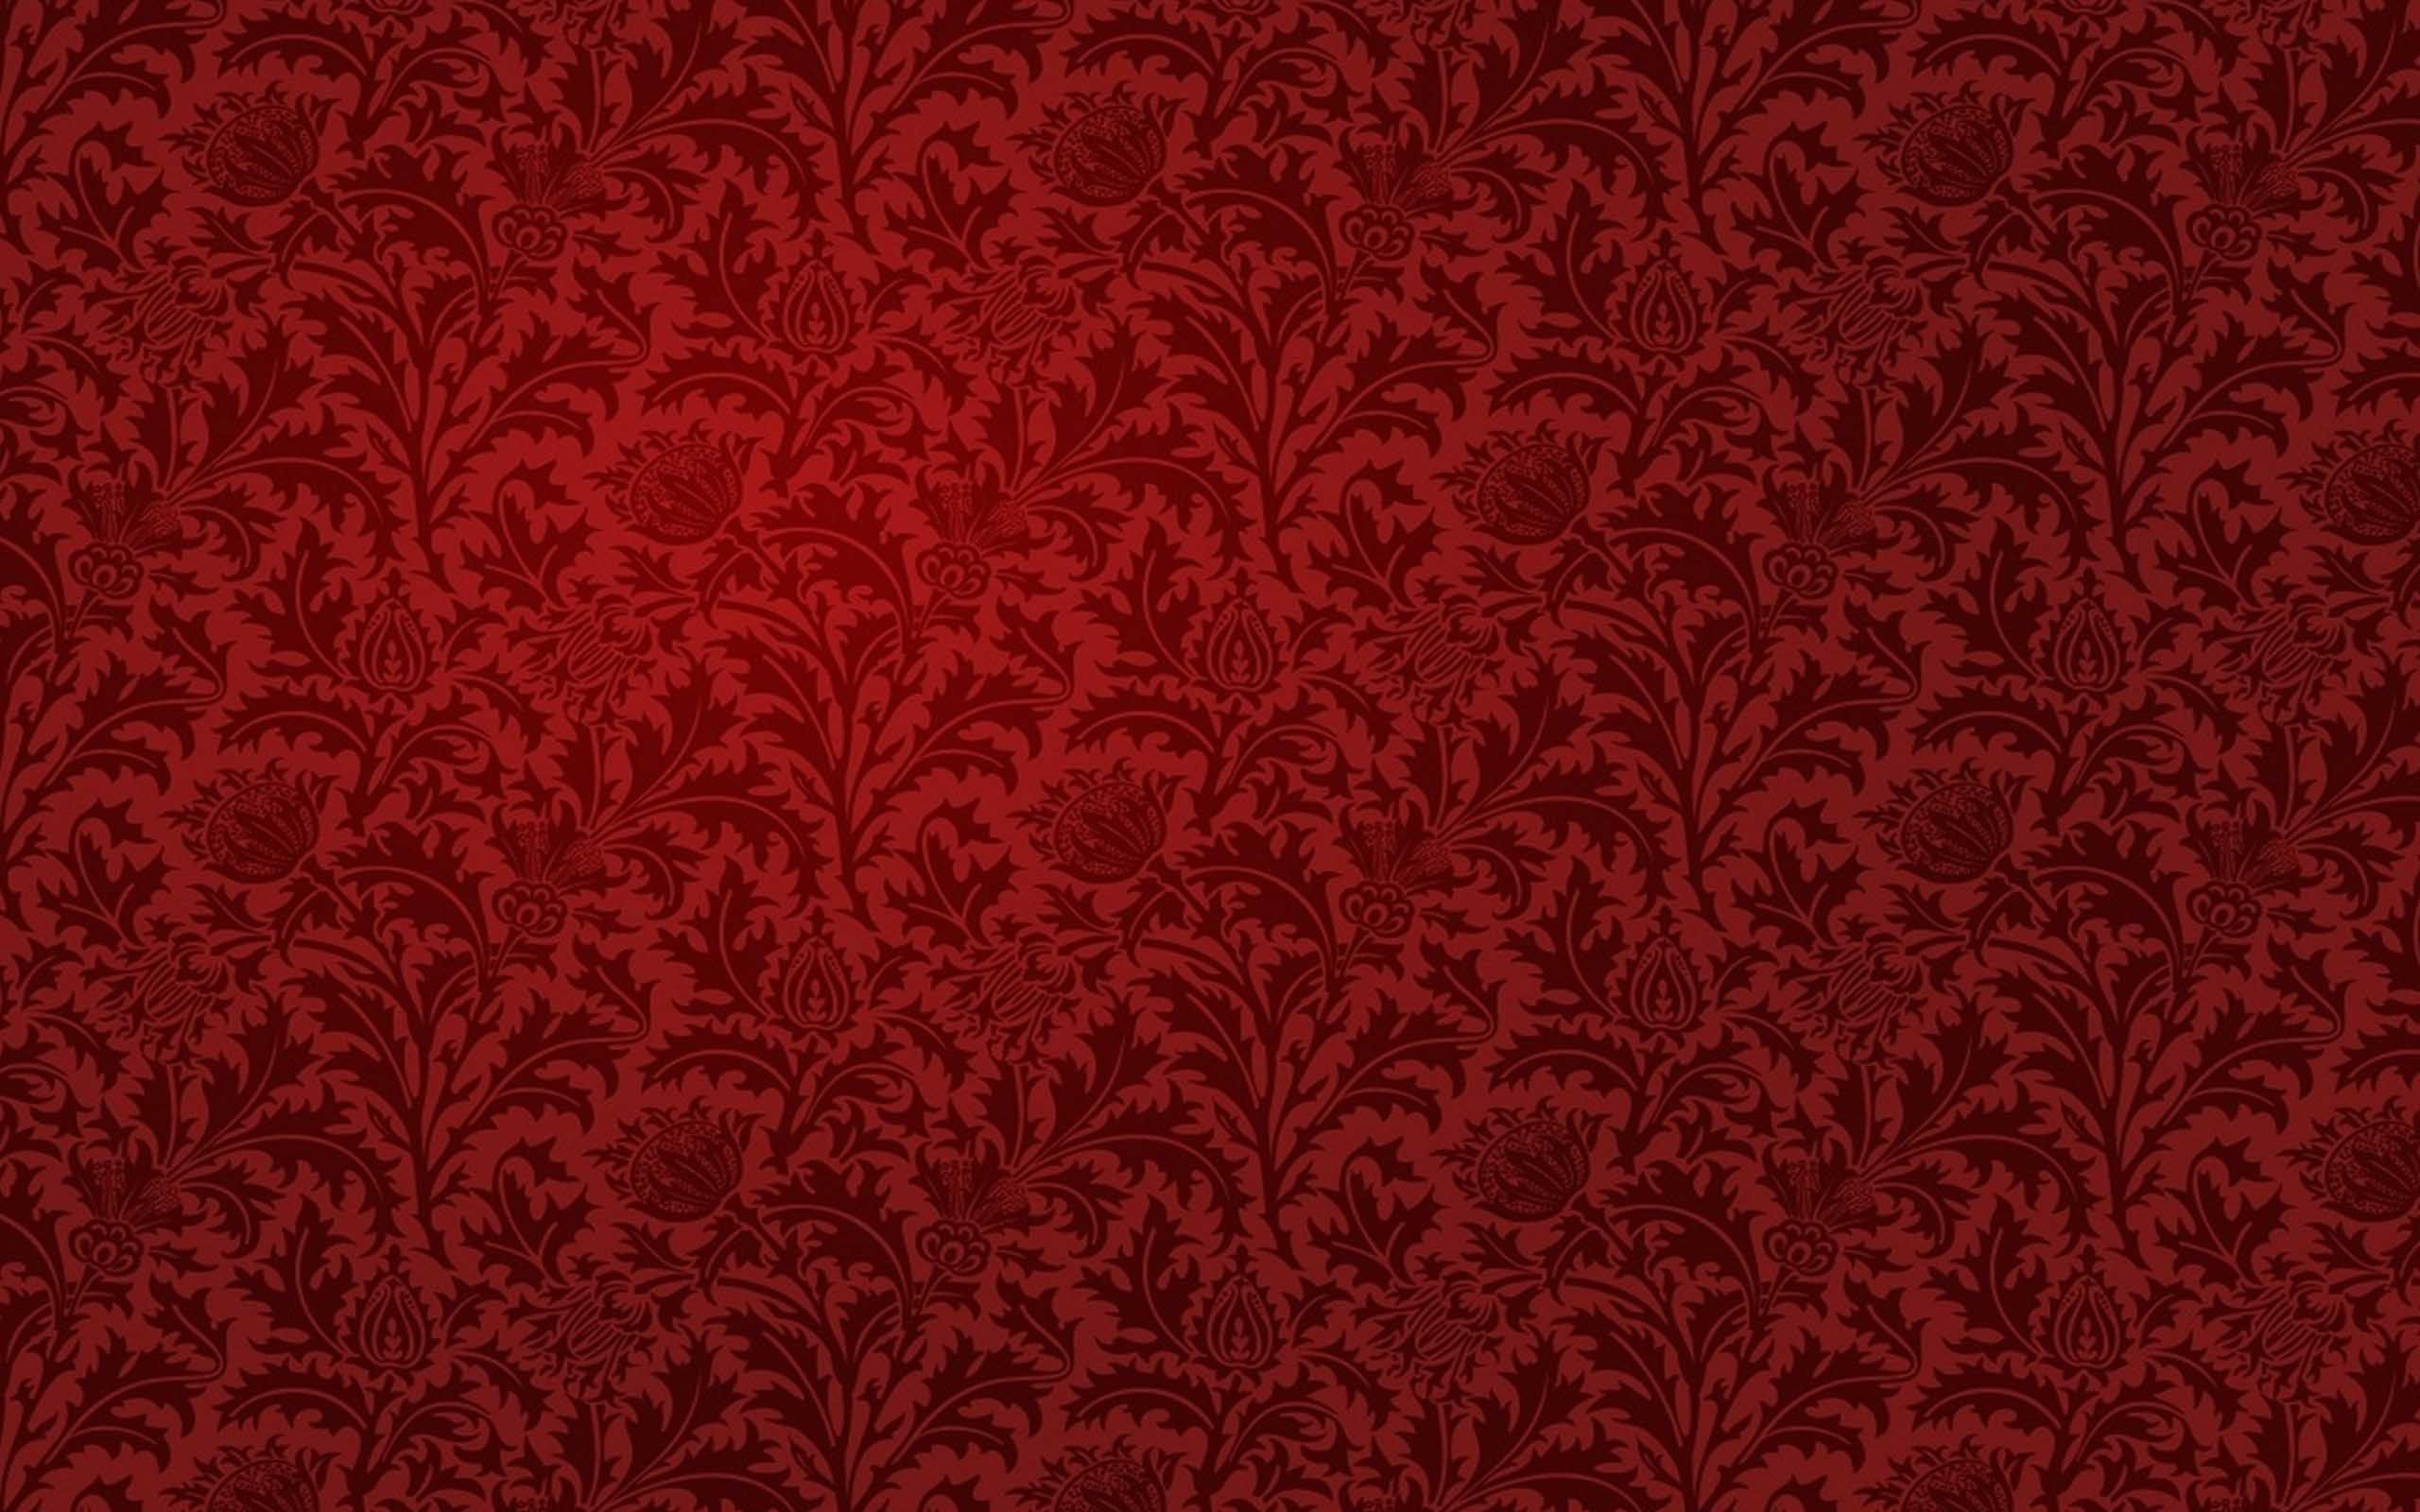 Red Texture Wallpaper Mobile For Desktop Wallpaper 2560 X 1600 Px 1 2 Mb Striped Plain Polkadot Red And Gold Wallpaper Red Wallpaper Vintage Desktop Wallpapers